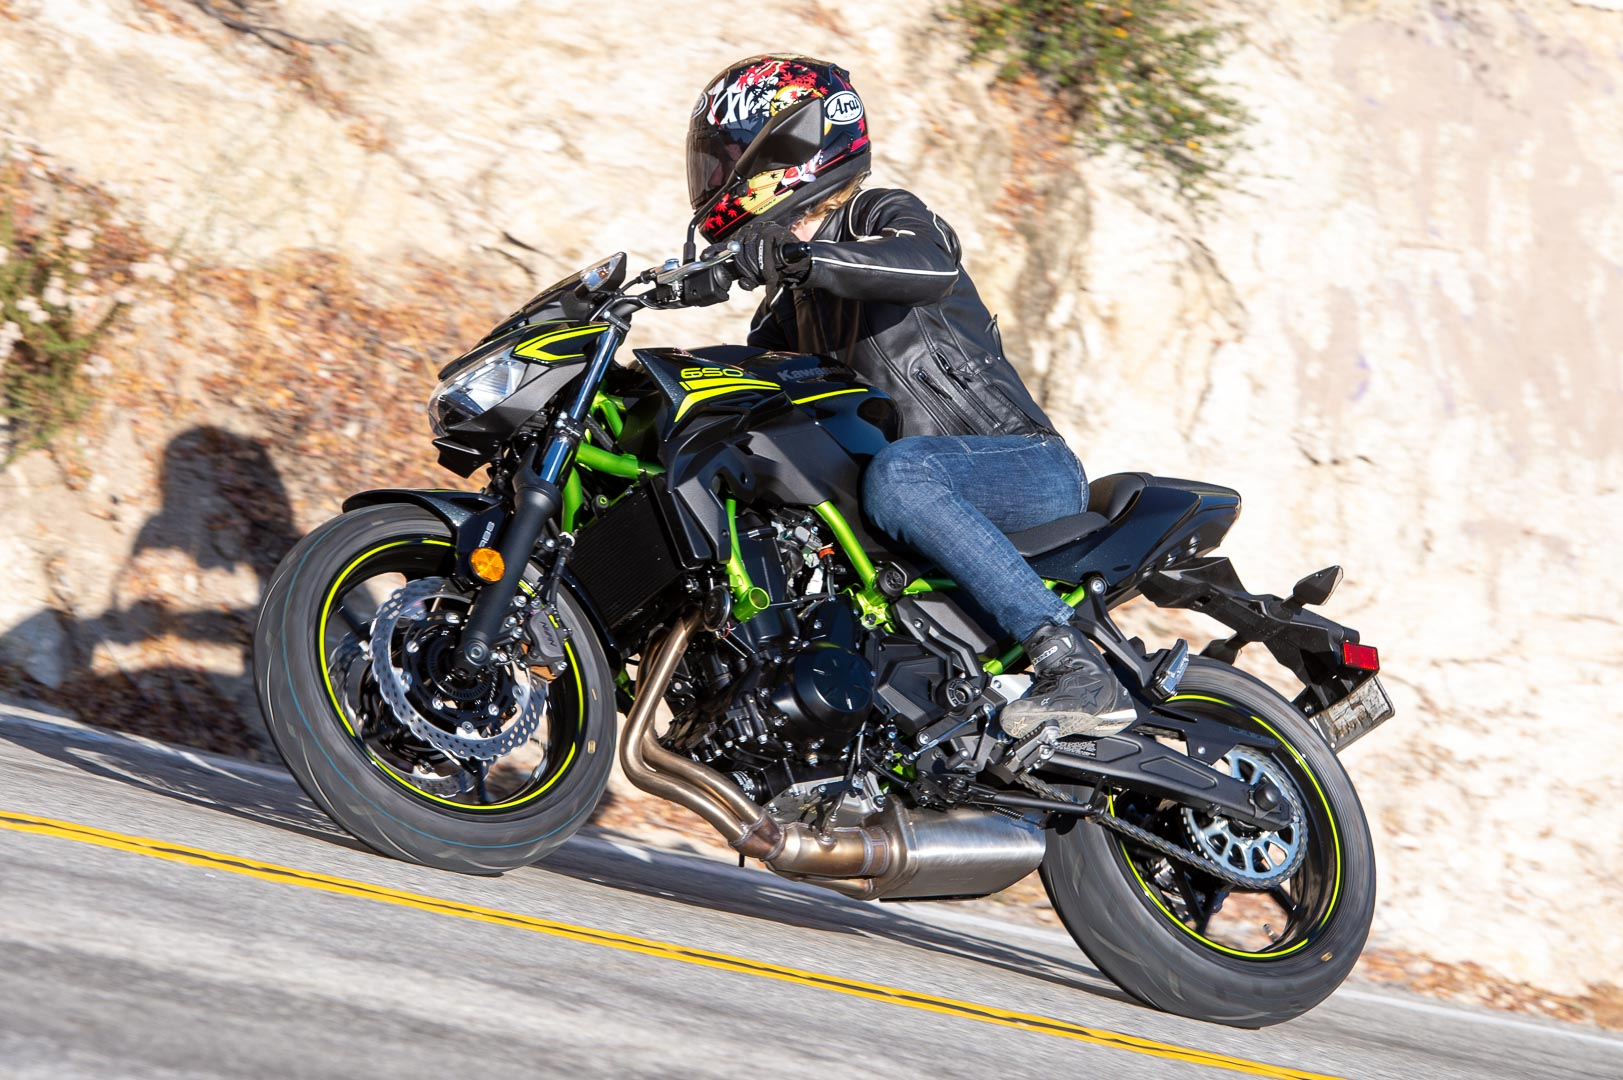 2020 Kawasaki Z650 Review - Price